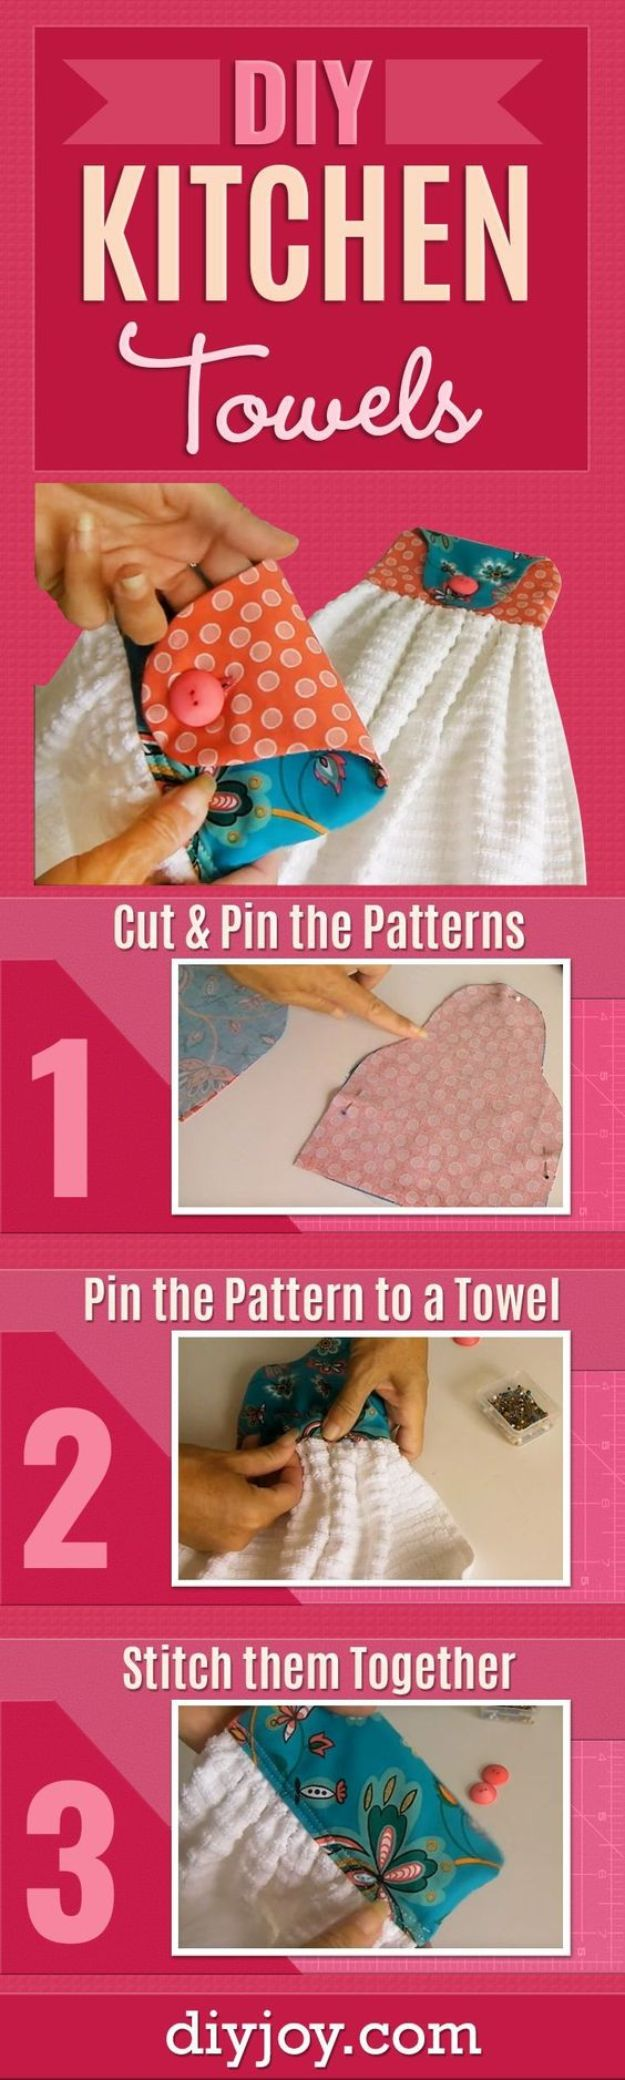 DIY Sewing Projects for the Home - DIY Kitchen Towels - Easy DIY Christmas Gifts and Ideas for Making Kitchen, Bedroom and Bathroom Decor - Free Step by Step Tutorial to Sew